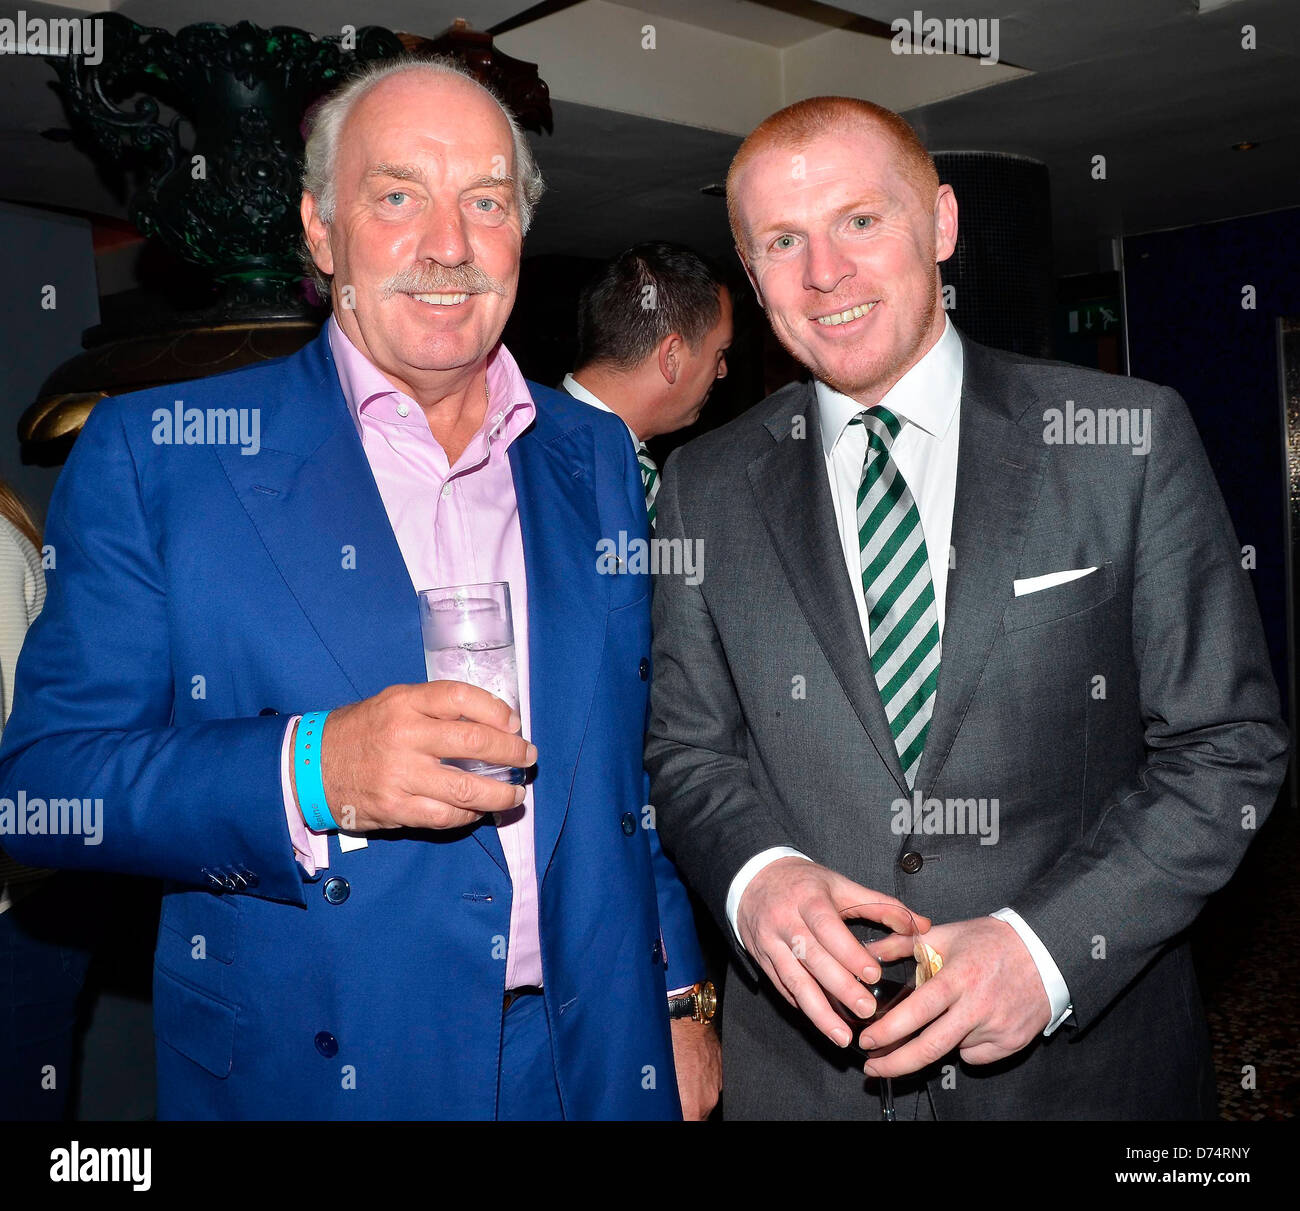 Image result for dermot desmond